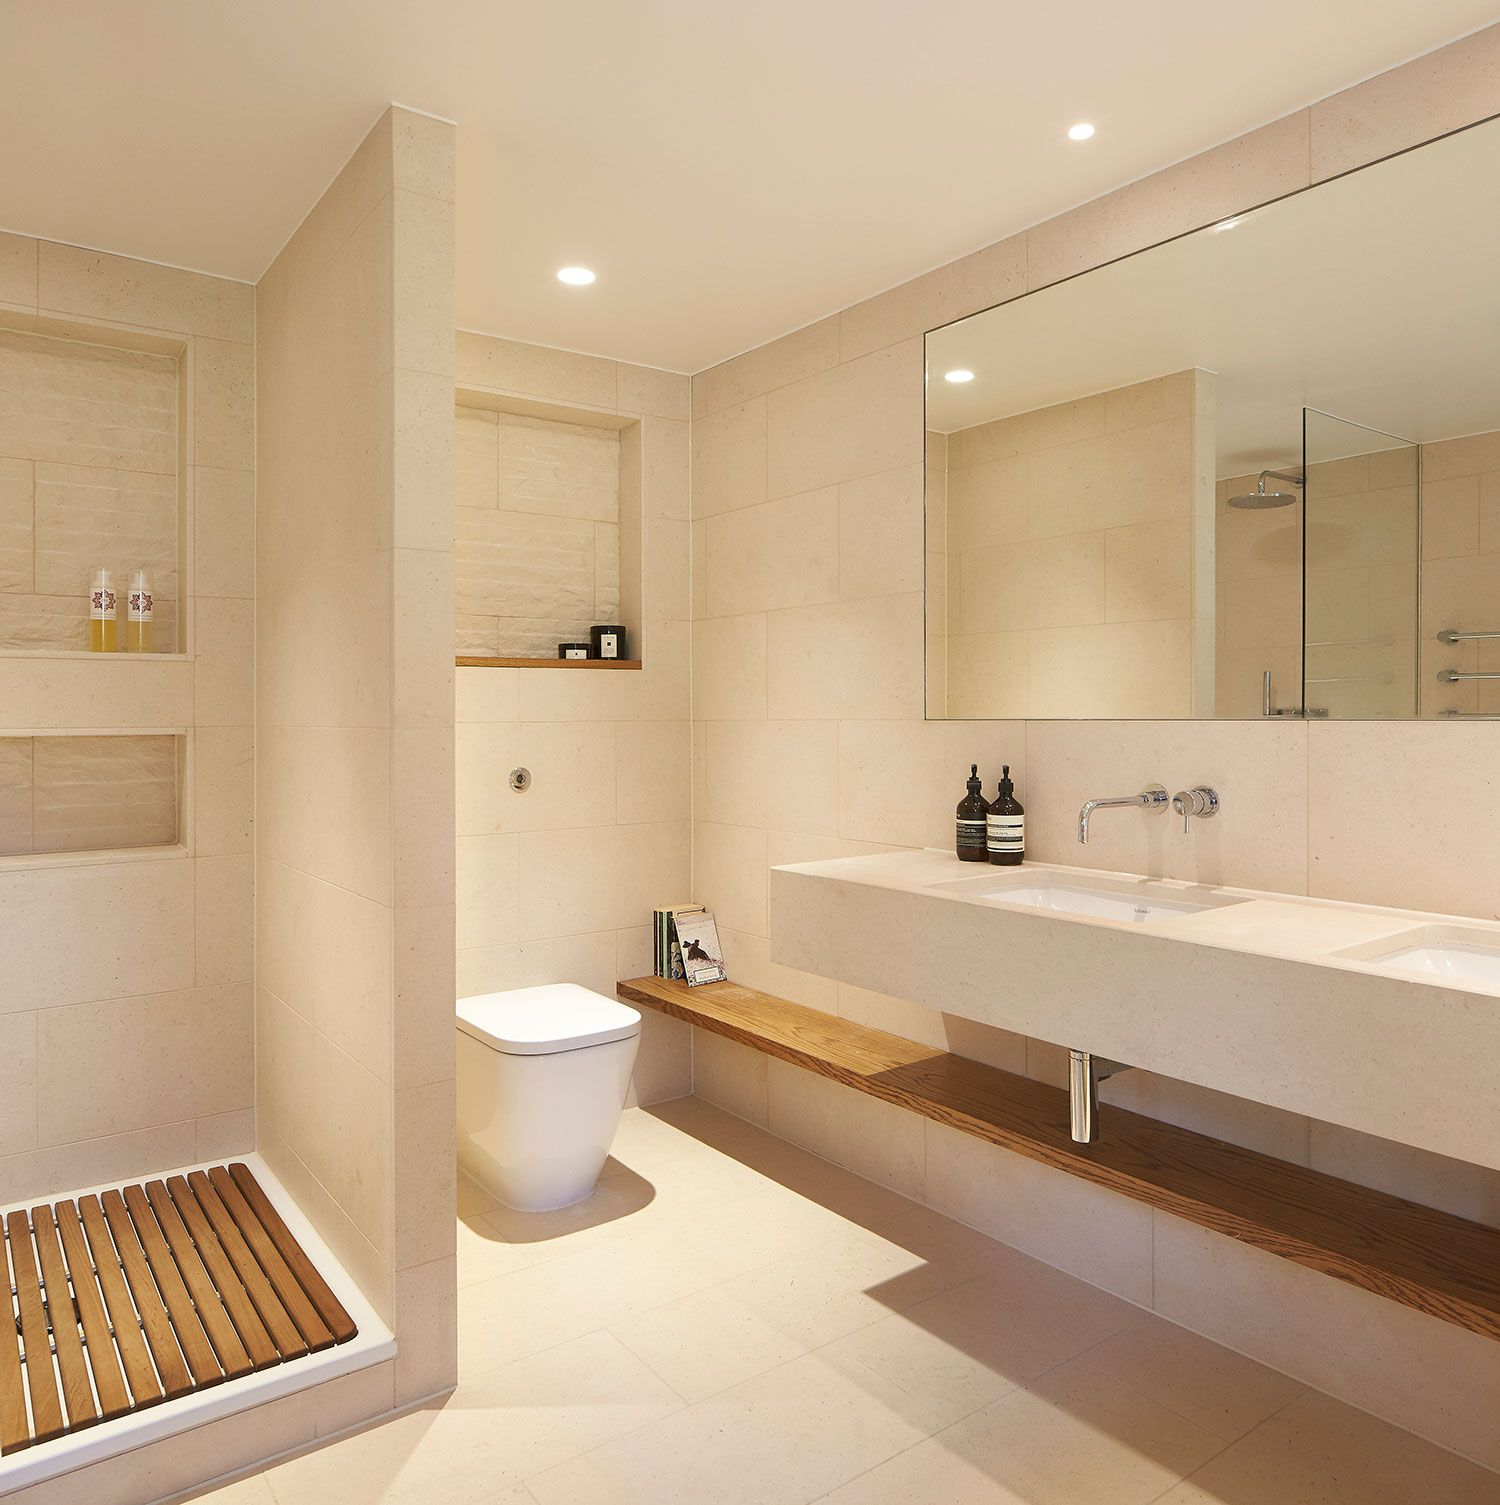 beautiful en suite bathroom at a private house featuring